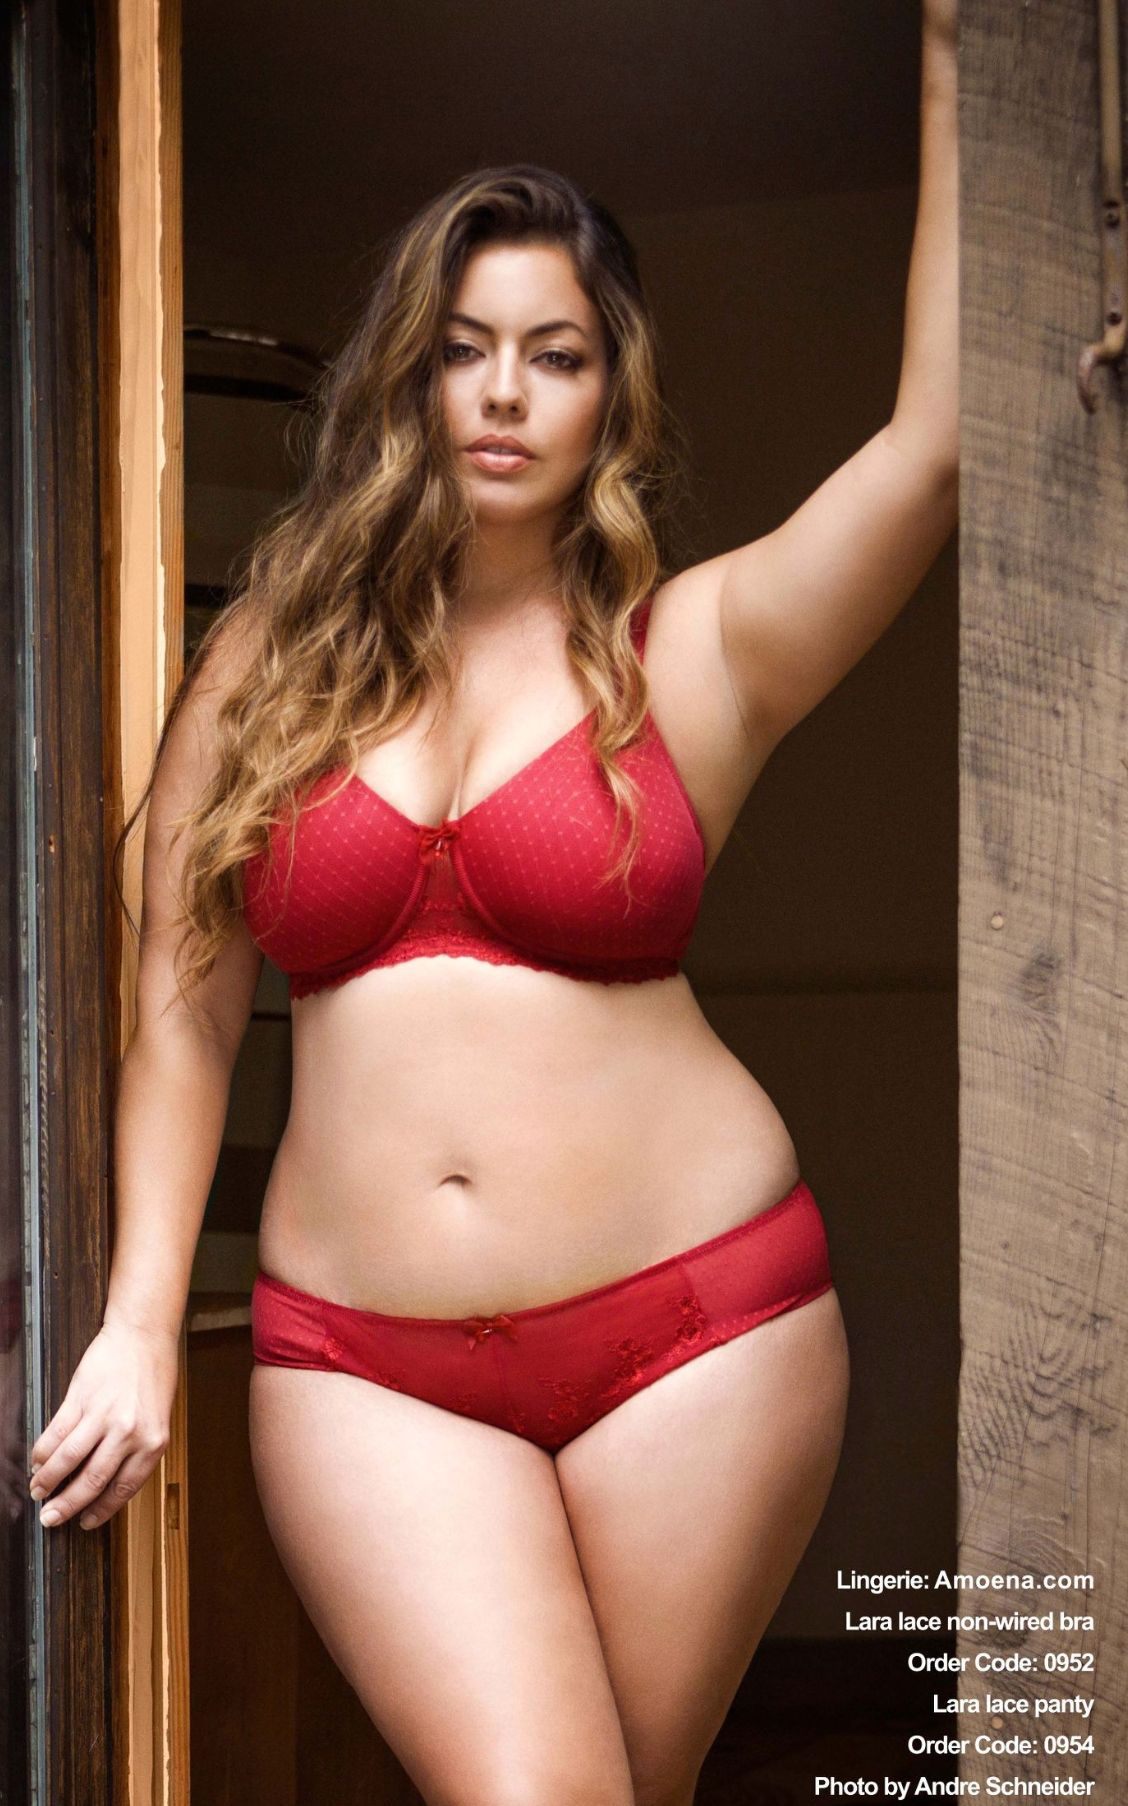 plus size super model fluvia lacerda in red lingerie. lingerie by